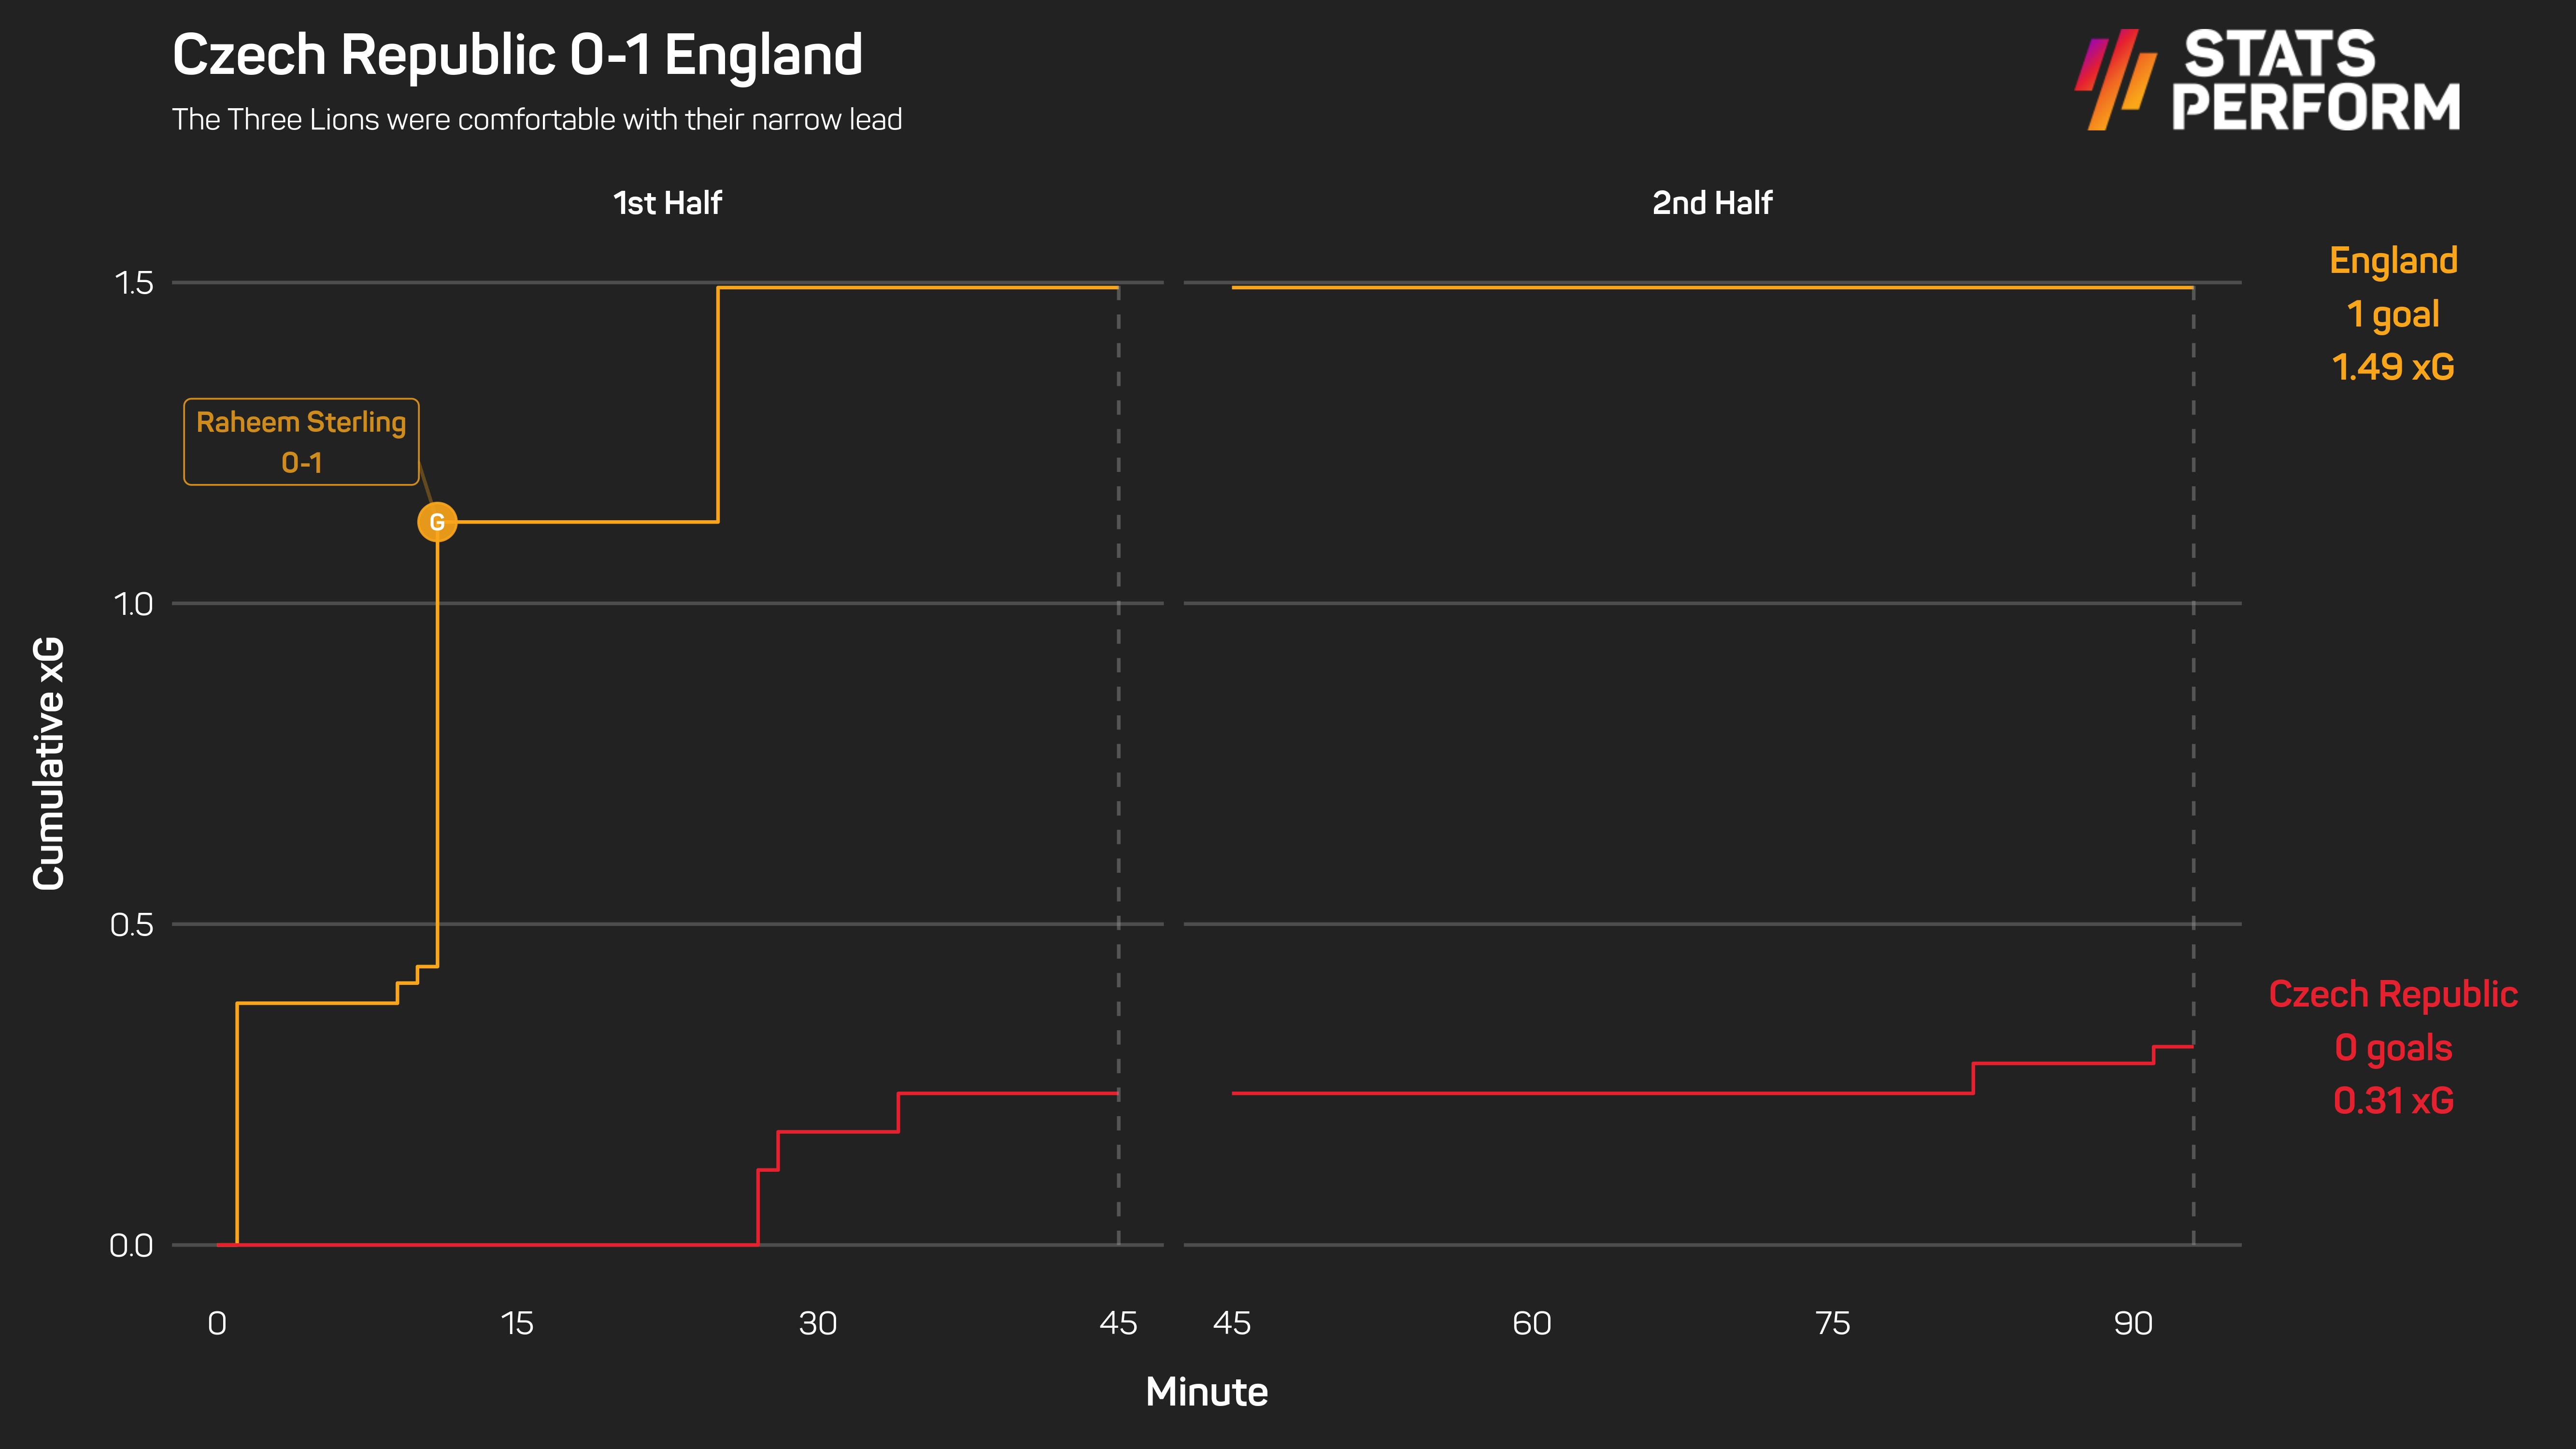 England protected their lead with ease against the Czech Republic